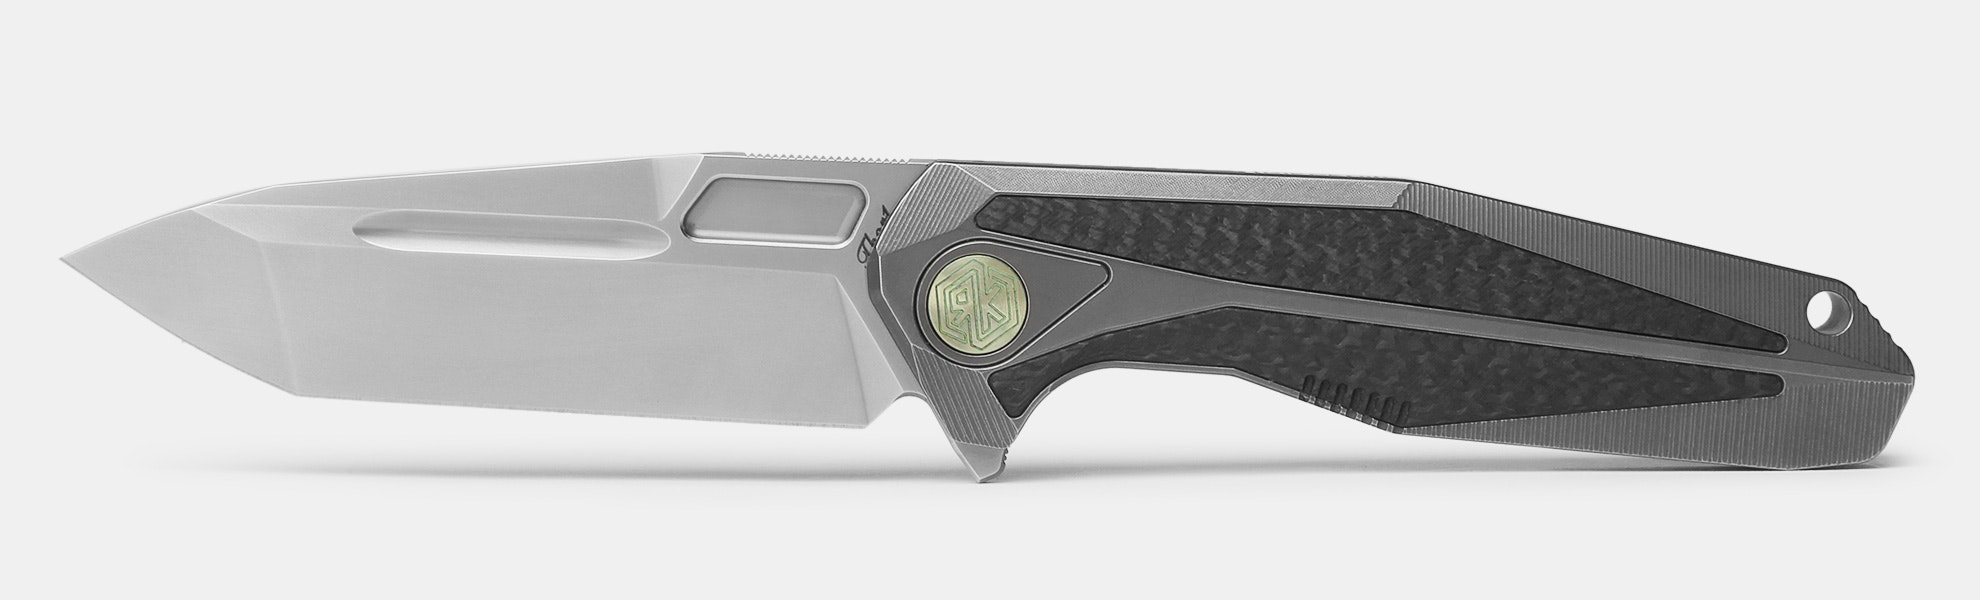 Rike Knife Thor 1-CF Integral Frame Lock Folder